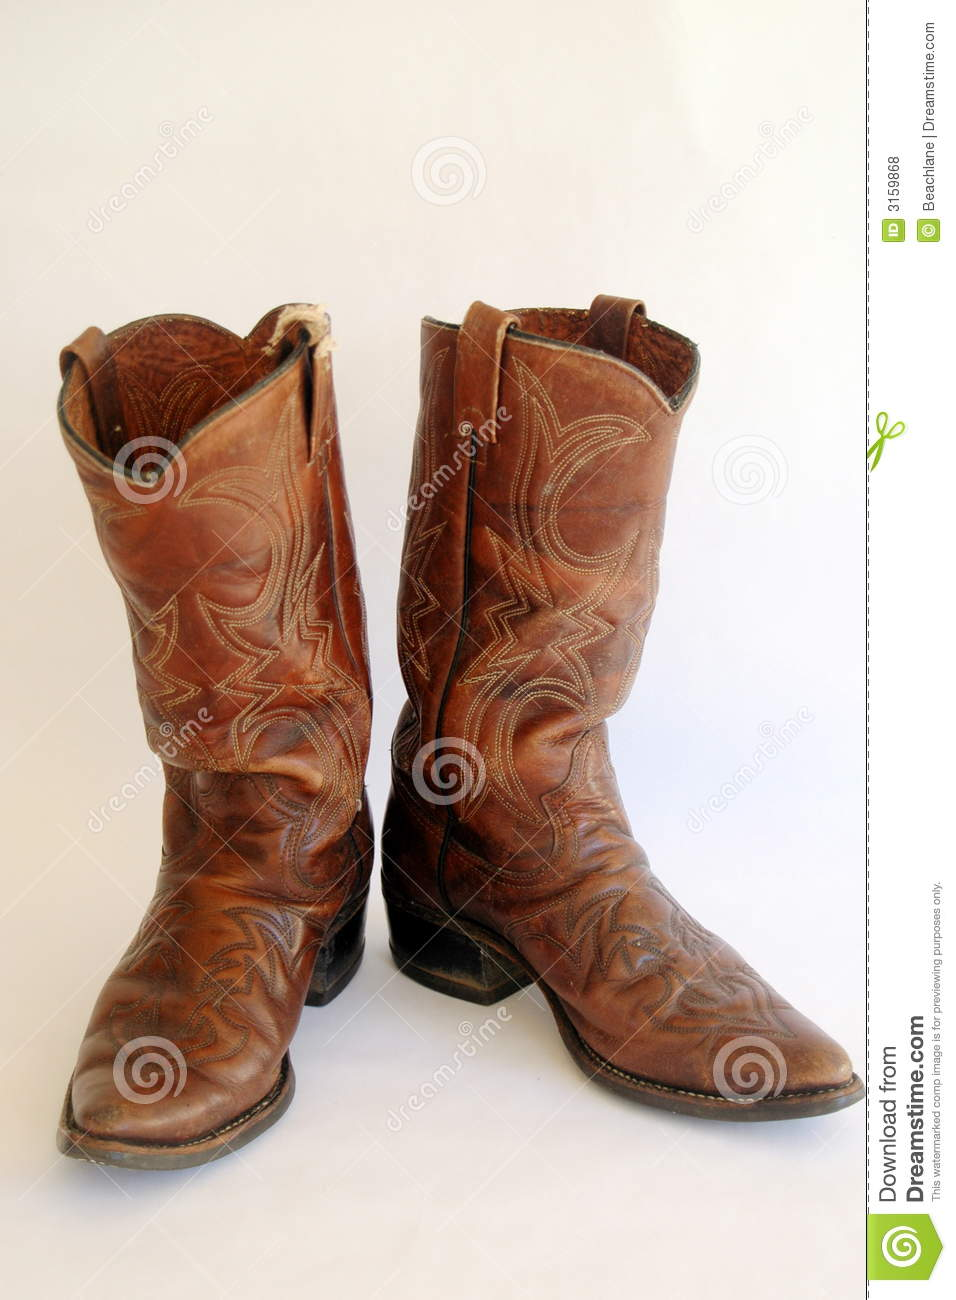 Brown Leather Cowboy Boots Royalty Free Stock Photos - Image: 3159868